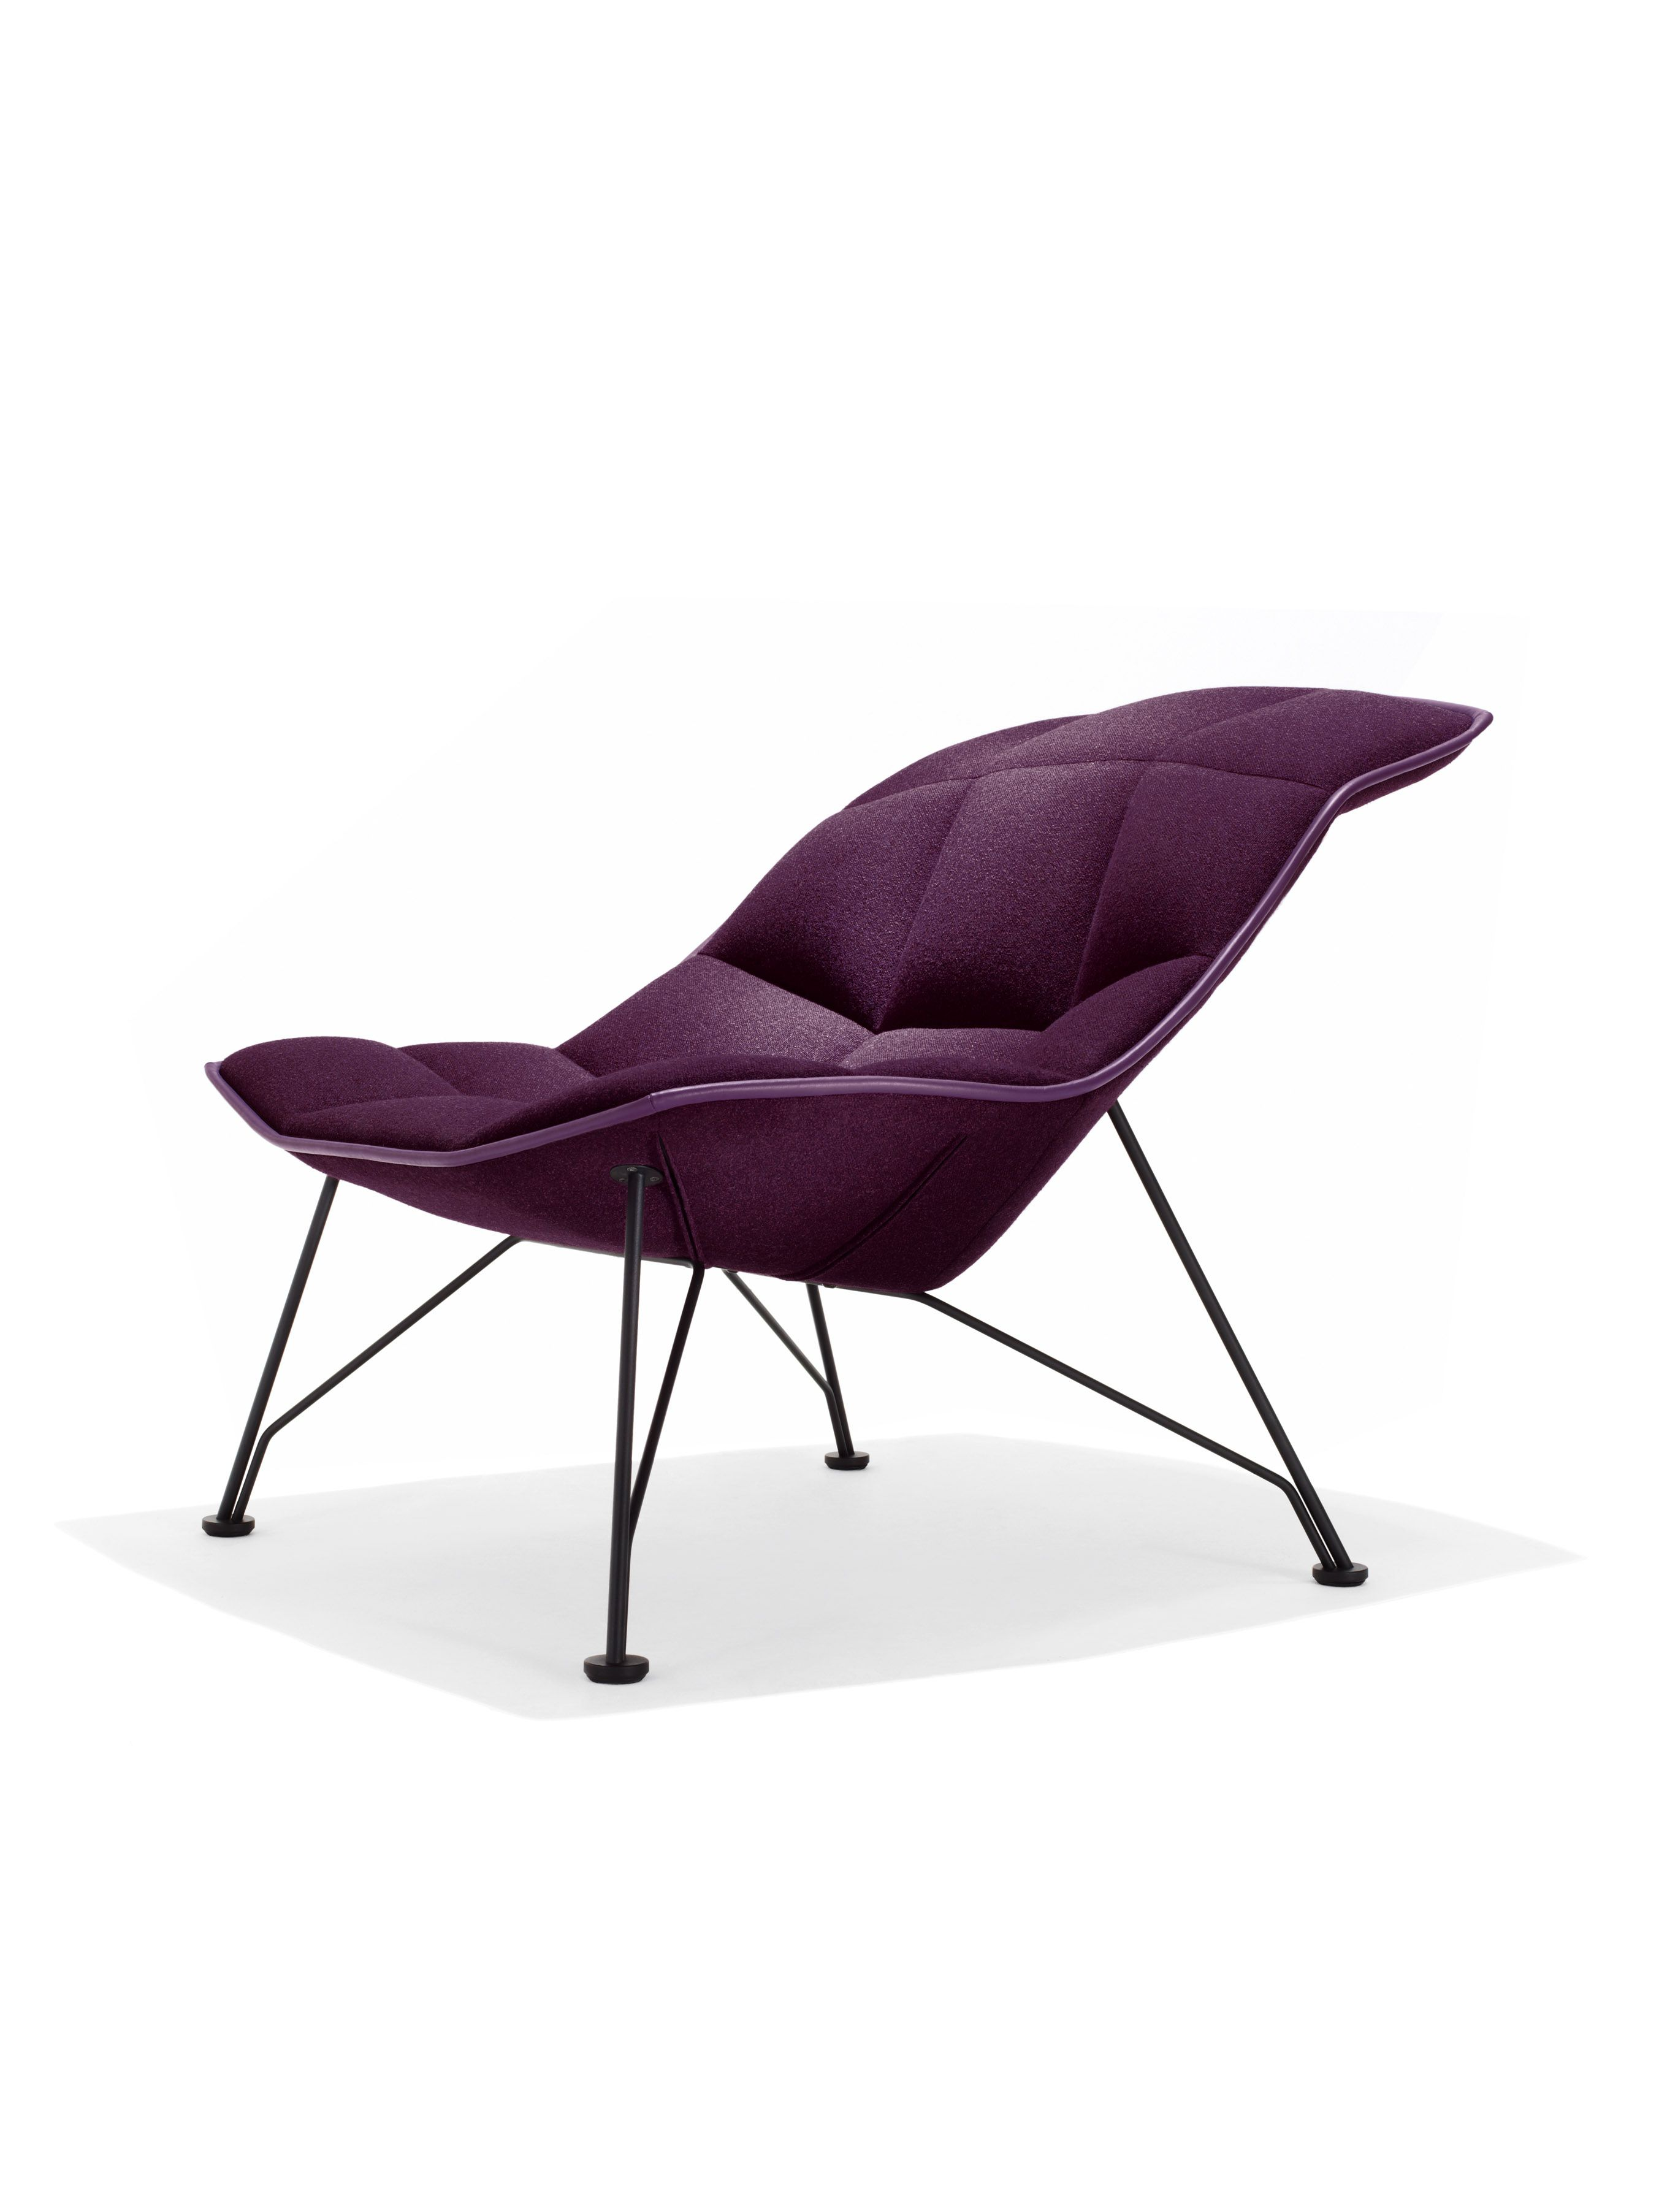 at ease in the workplace or home the strikingly simple jehs laub